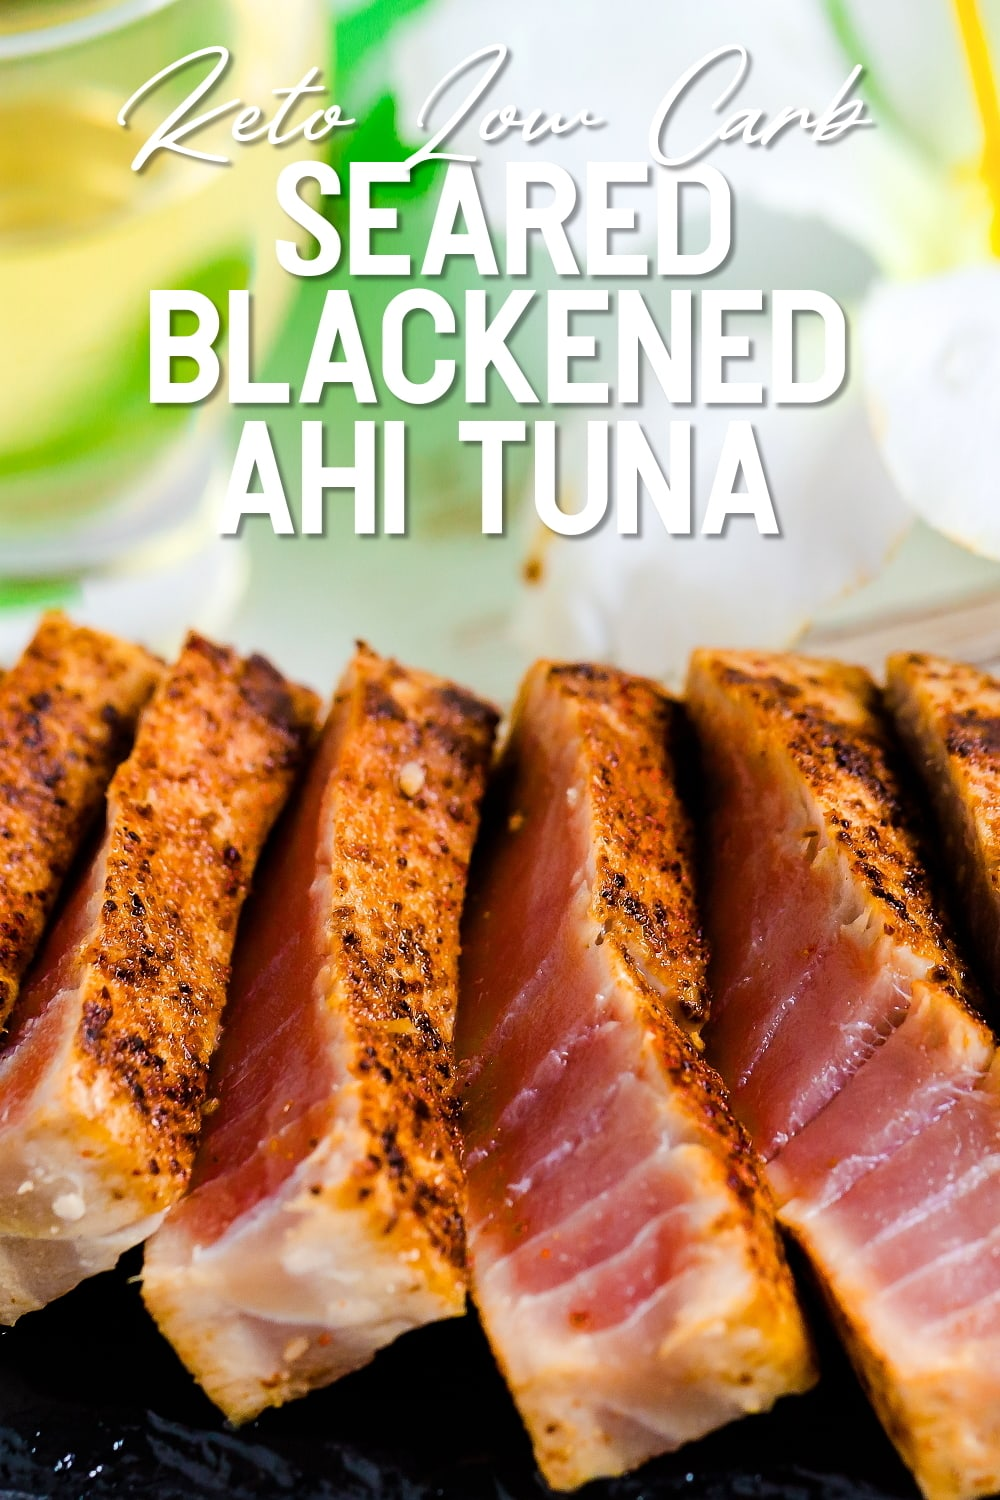 Seared Blackened Ahi Tuna Steak served on a black slate showing cross sectional cut